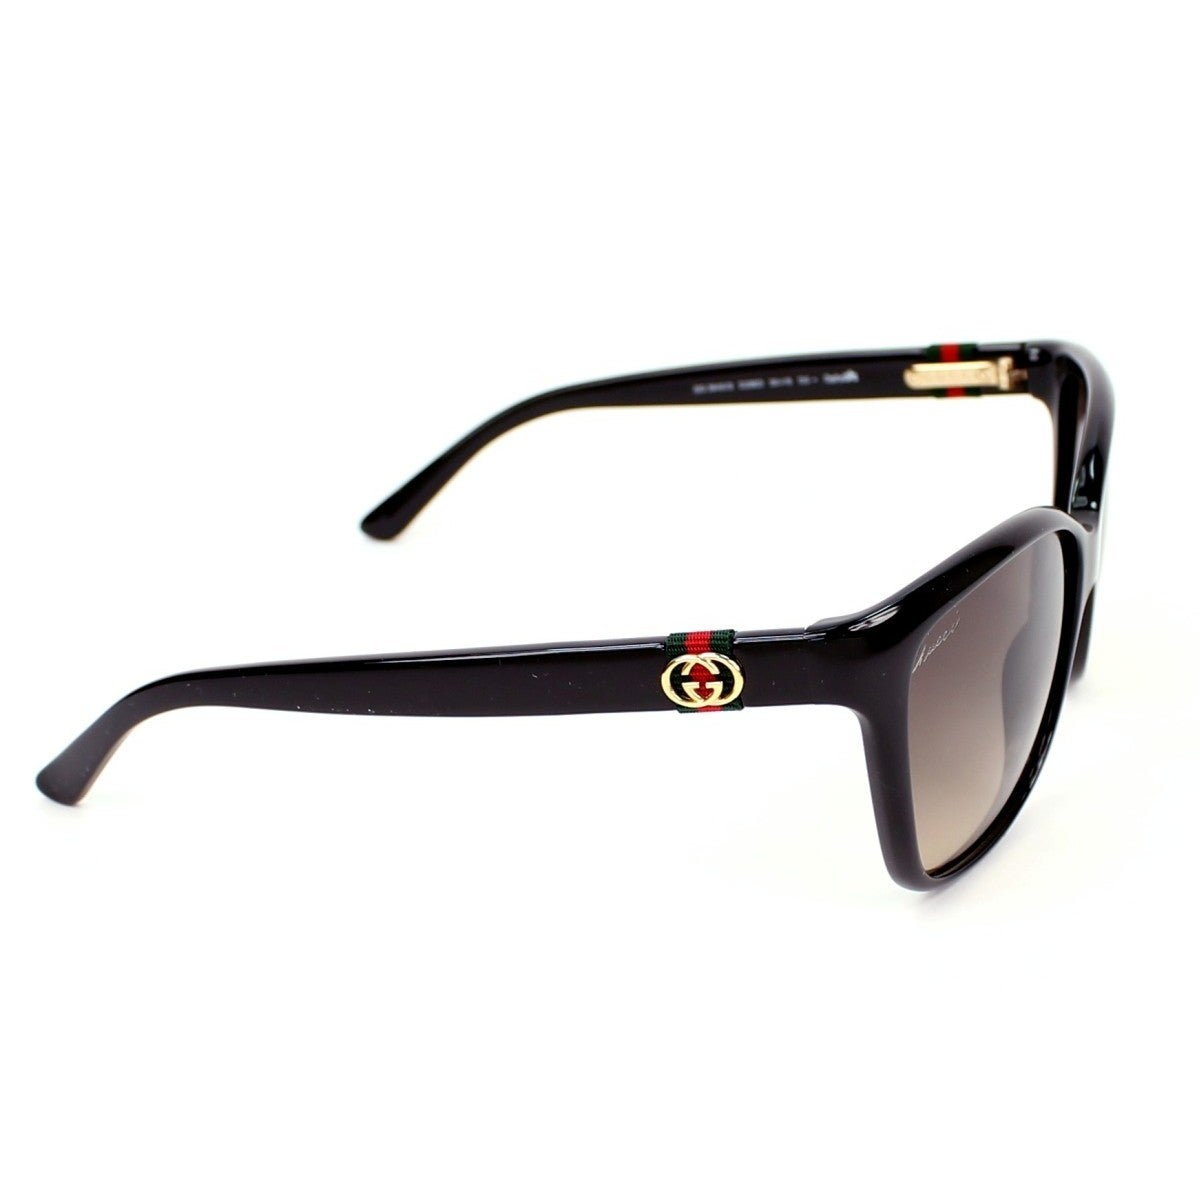 aaaecd497c4 Shop Gucci GG 3645 S Brown Gradient Lenses Shiny Black Frame Sunglasses -  Free Shipping Today - Overstock - 10556477